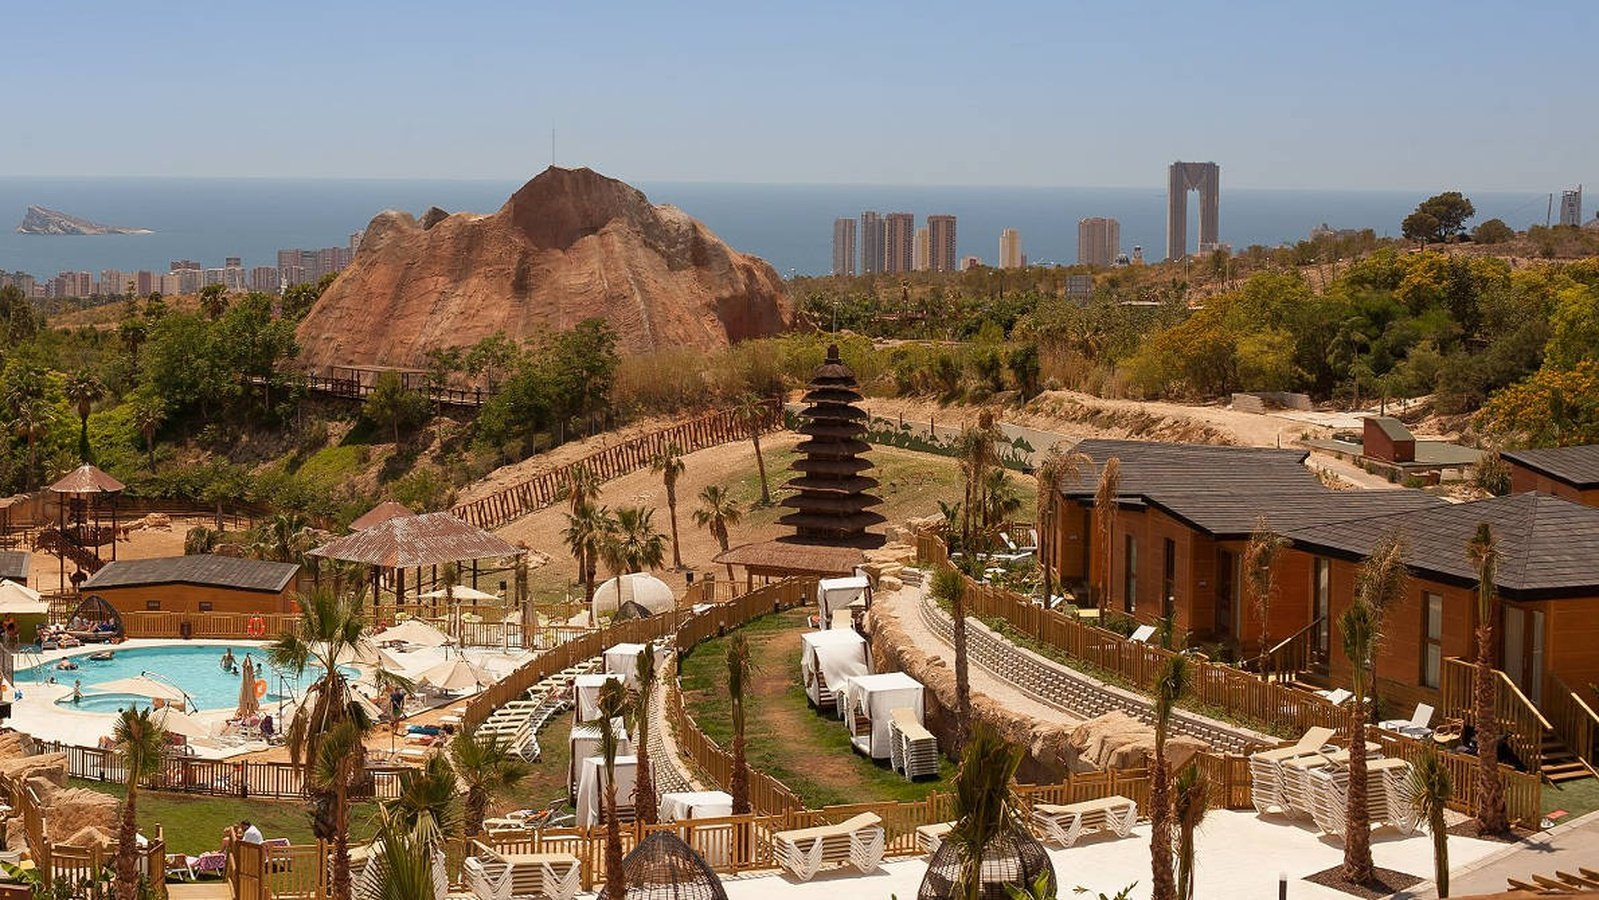 Magic Natura Animal, Waterpark & Polynesian Resort Benidorm